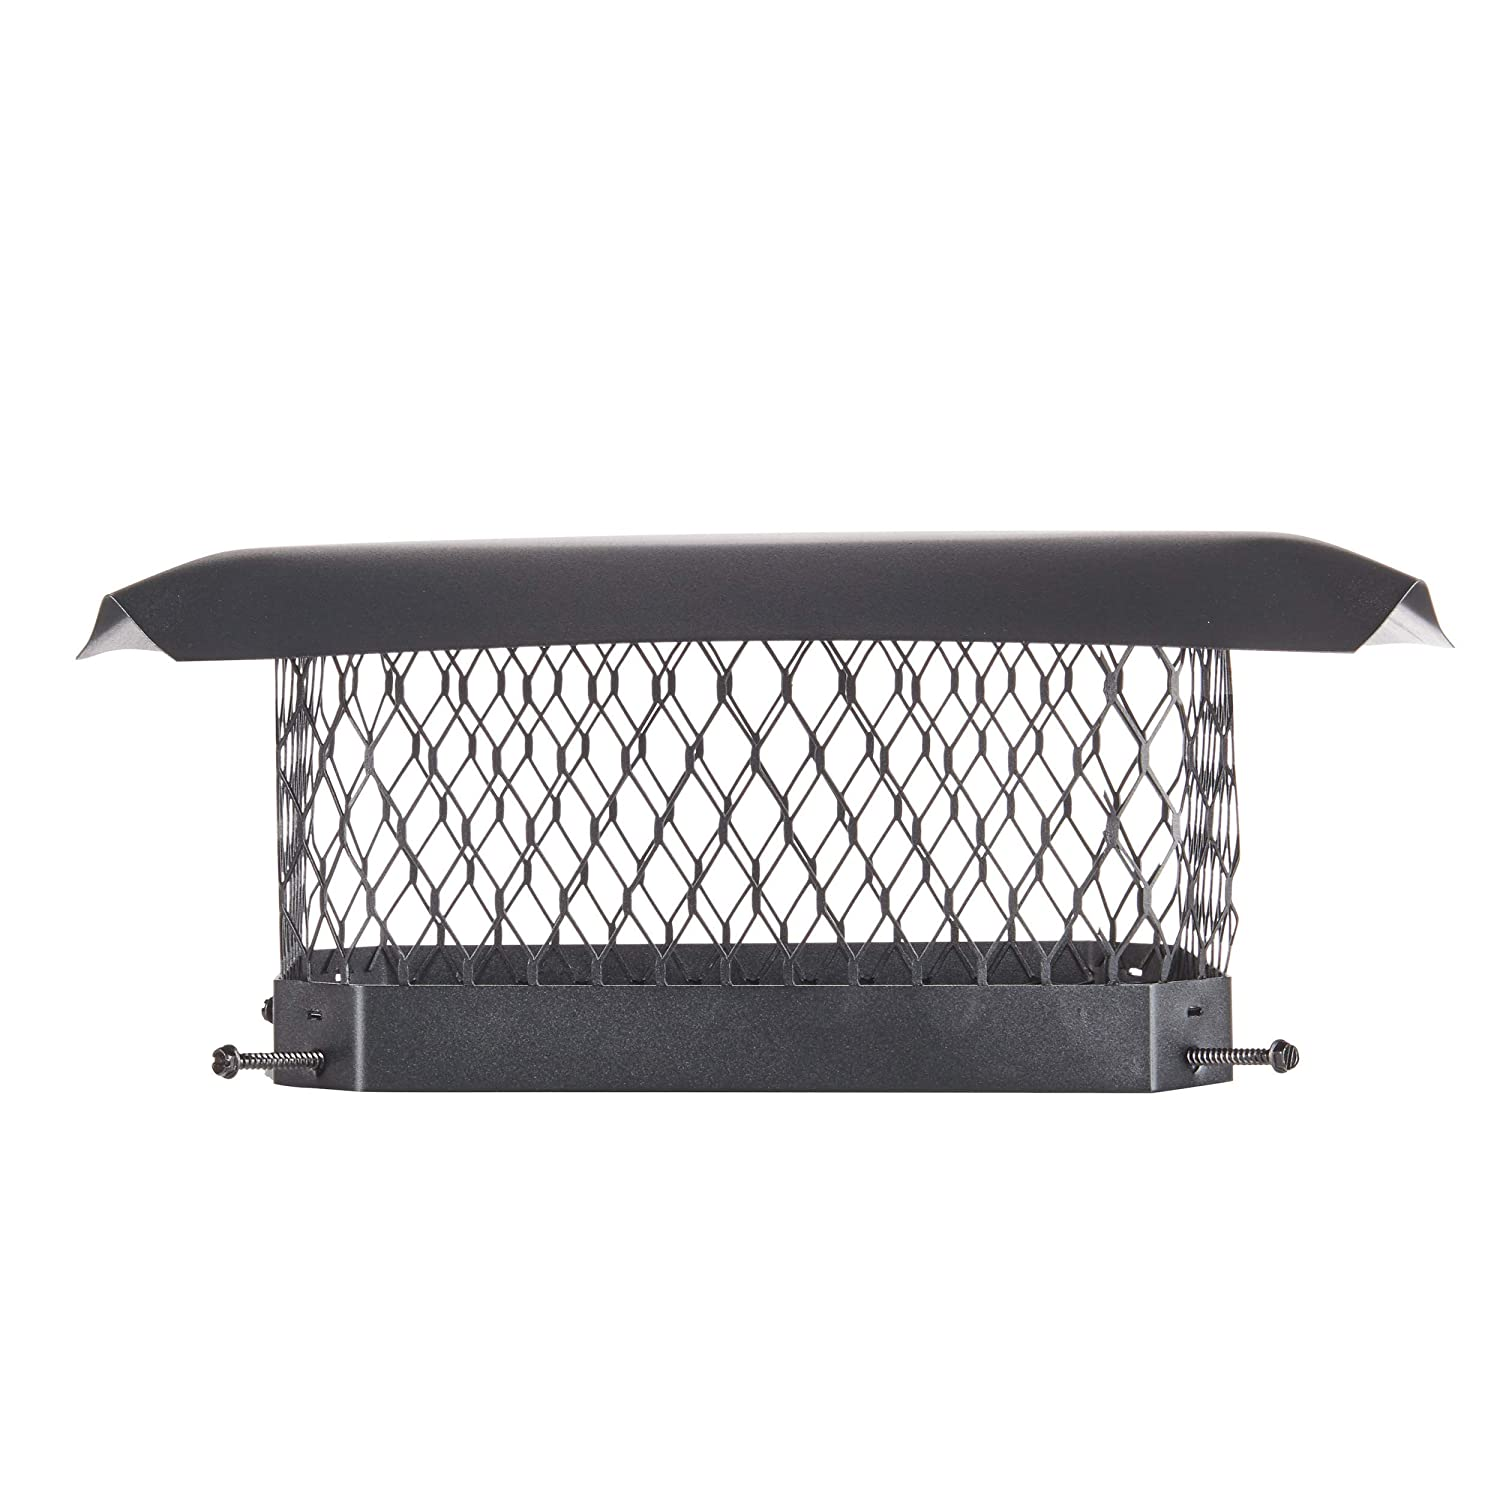 Black Galvanized Steel Renewed Fits Outside Existing Clay Flue Tile Dimensions 12 x 16 HY-C SC1216 Shelter Bolt On Single Flue Chimney Cover Mesh Size 3//4